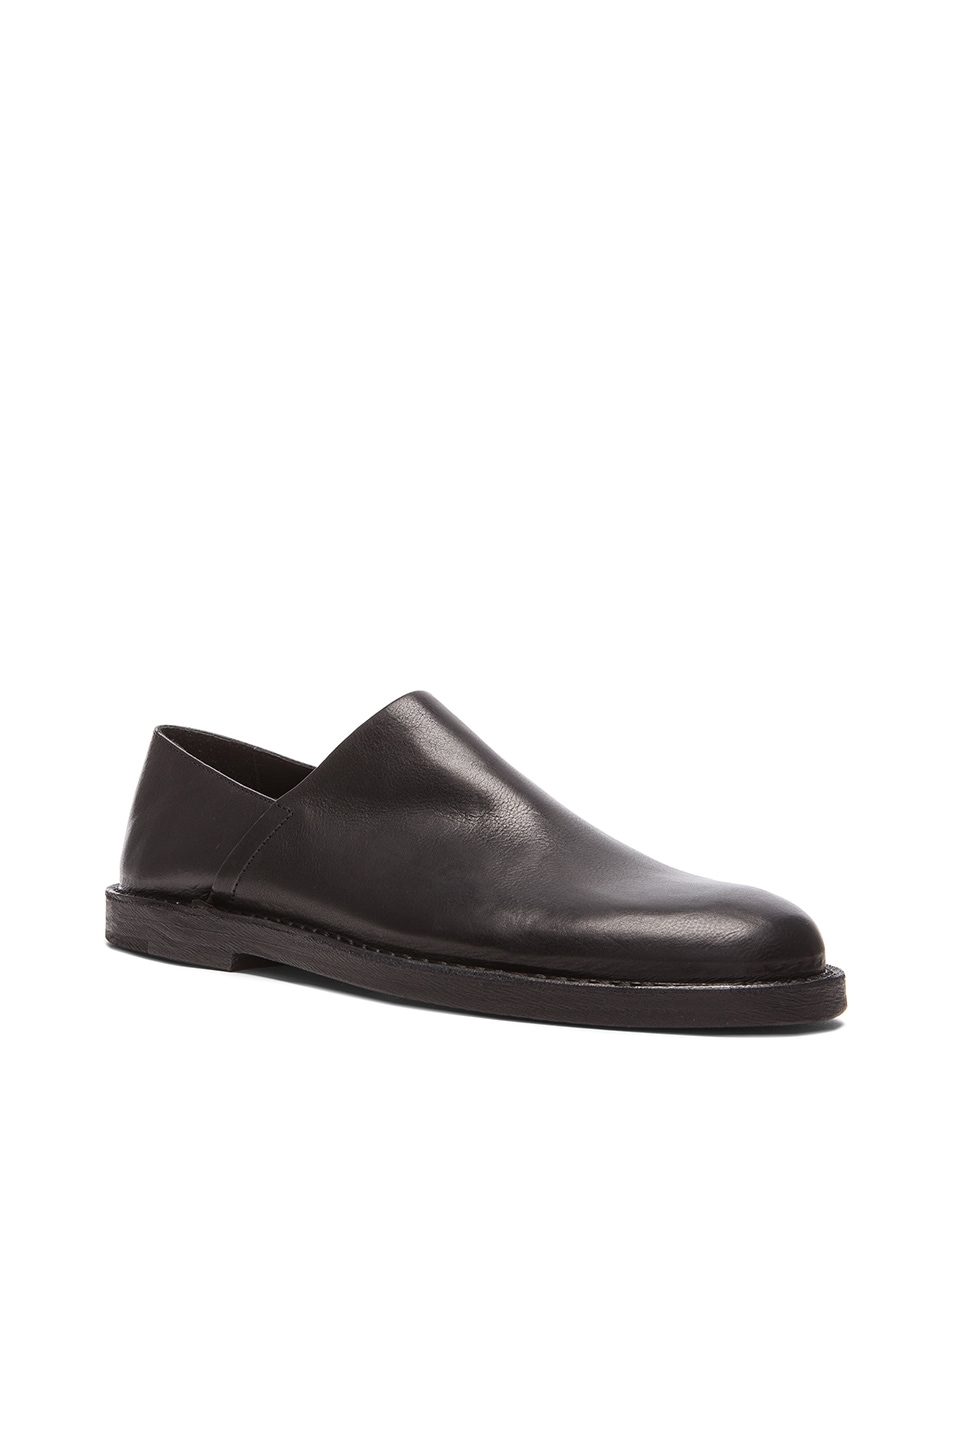 ANN DEMEULEMEESTER Leather Loafers jgG0yqU